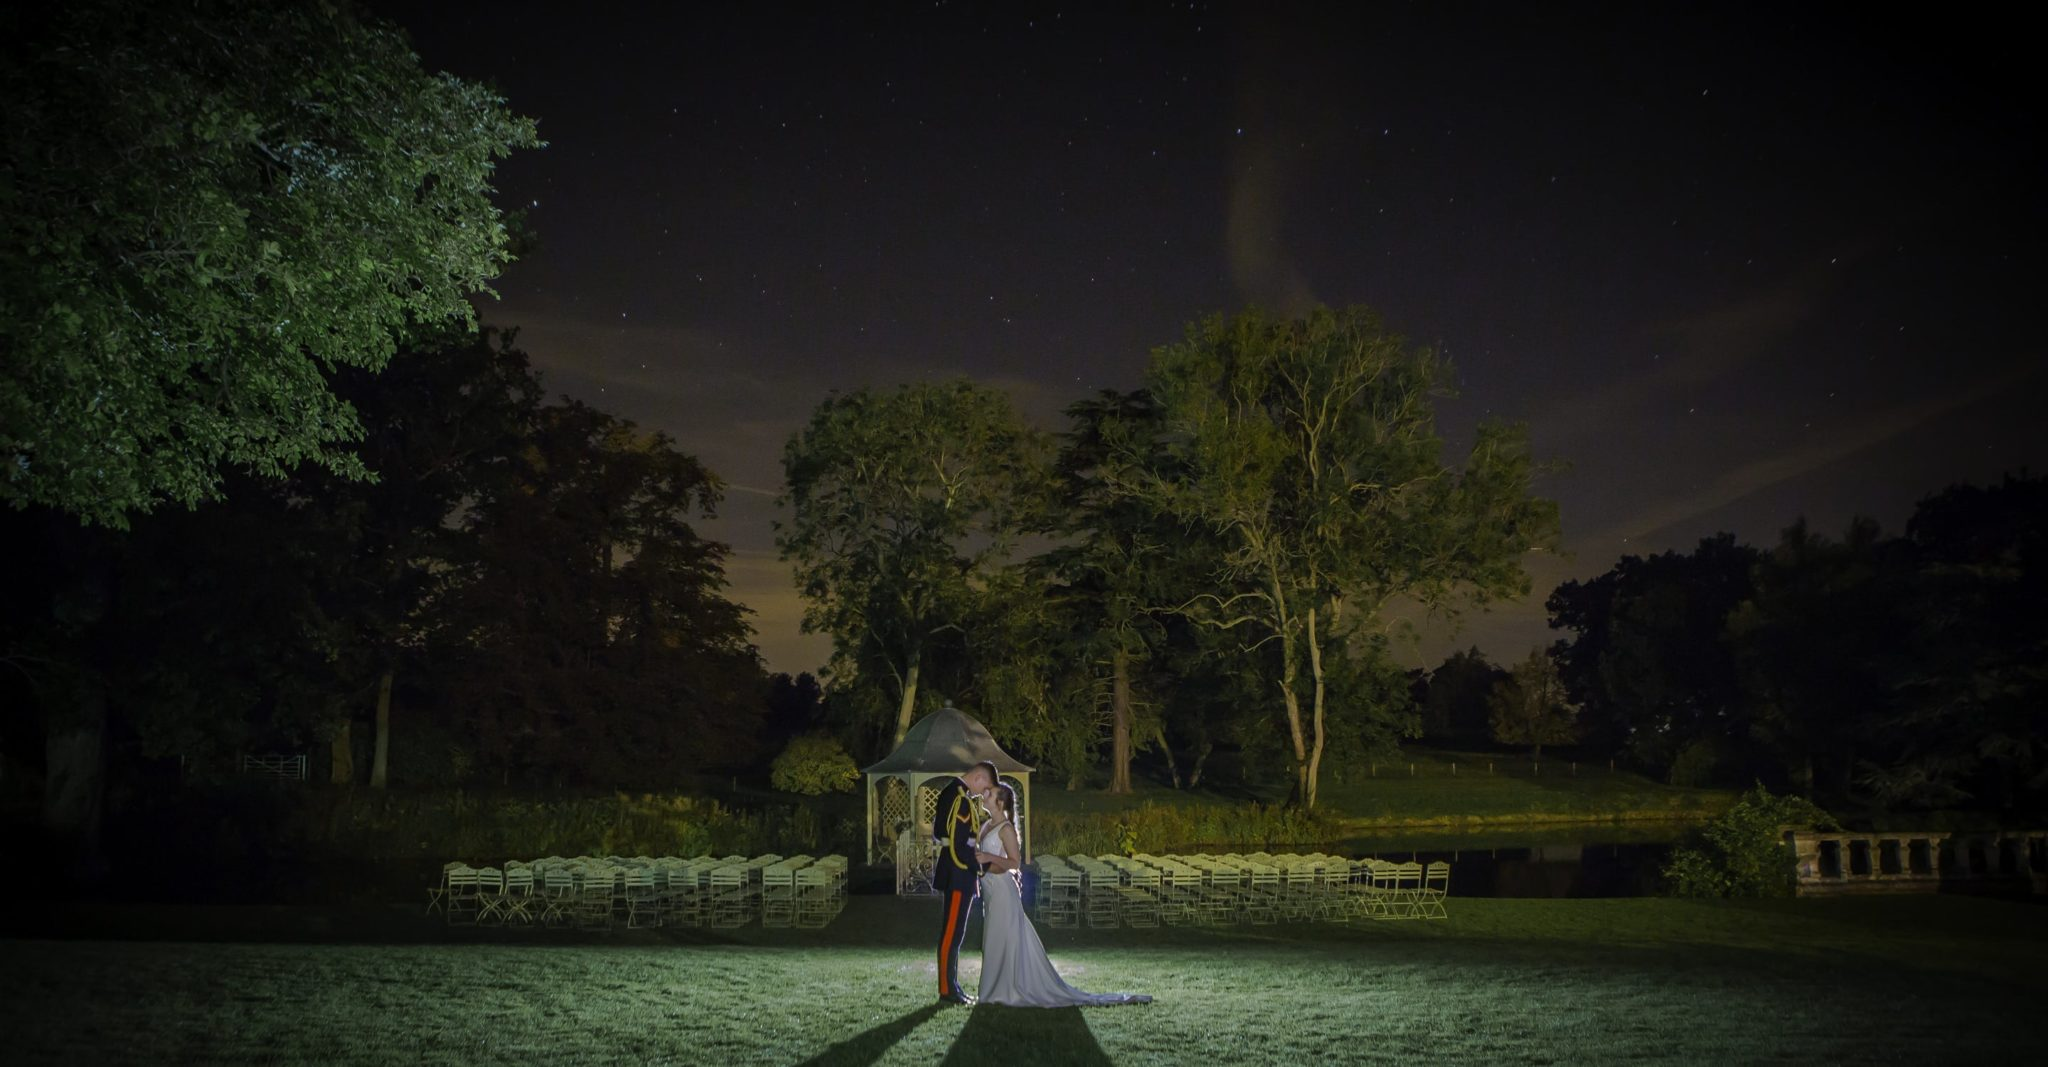 Bride and groom photographed at night at Longstowe Hall